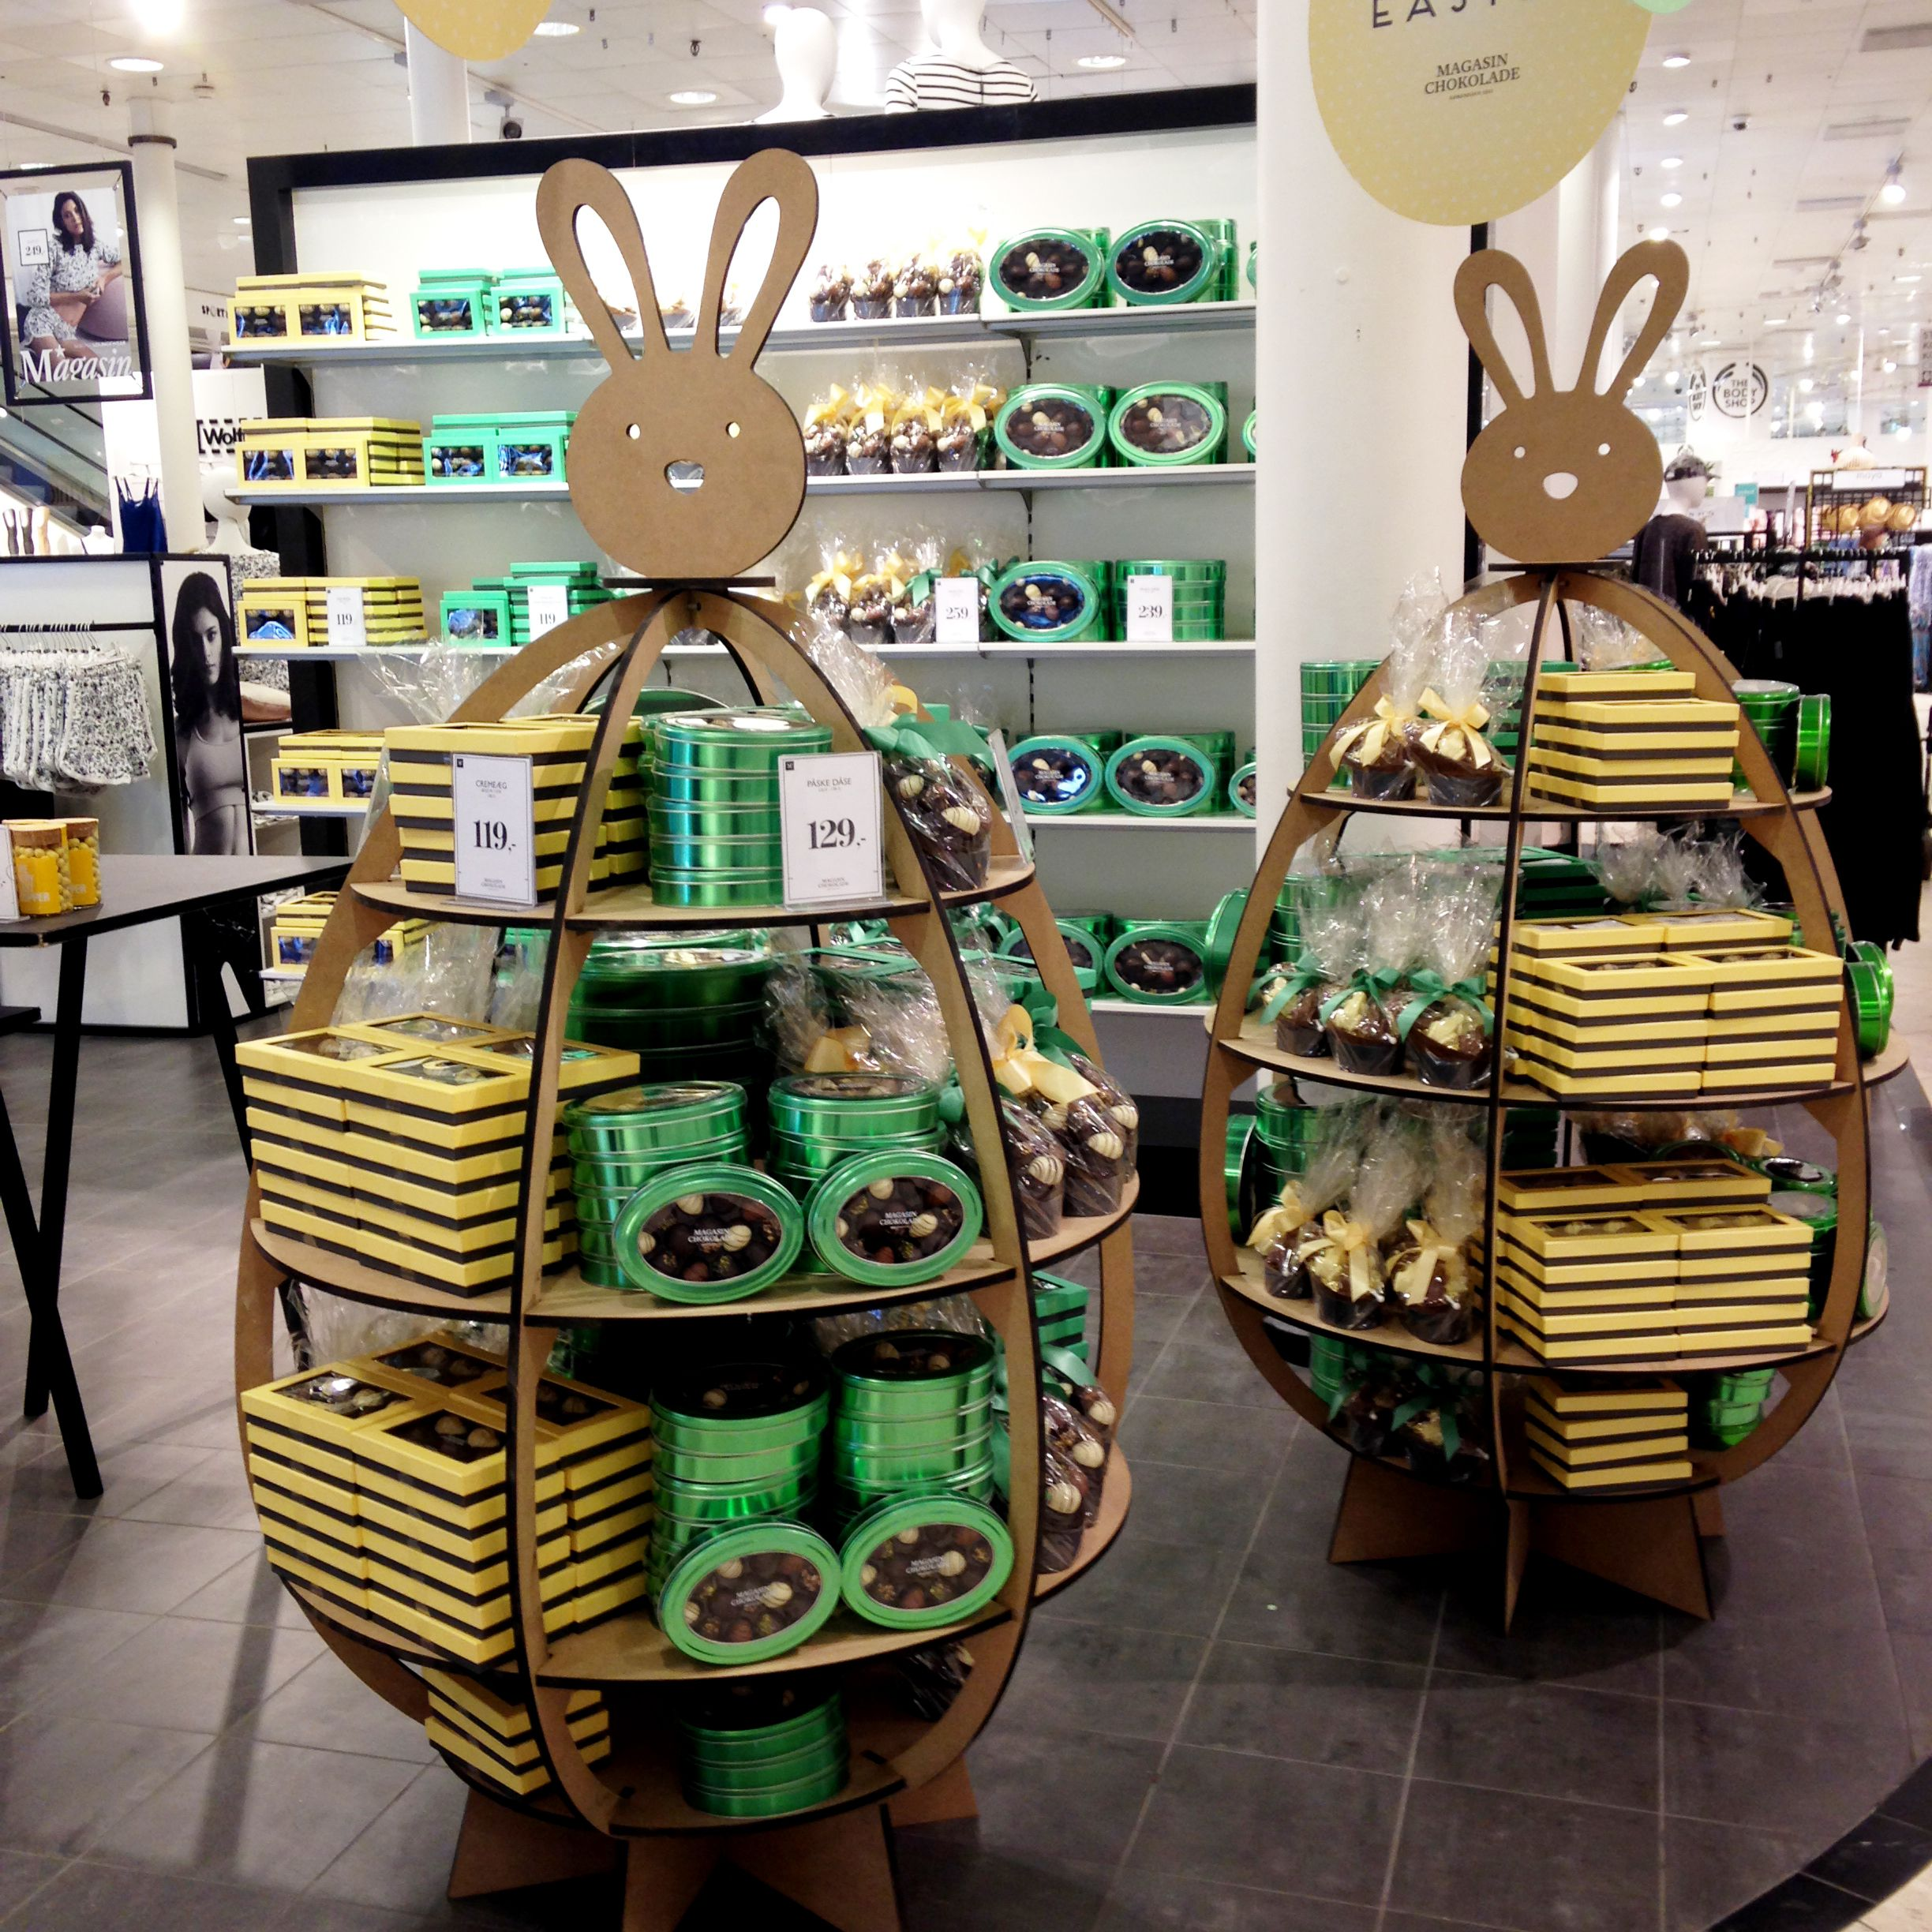 #Easter #Display #Bunny #Retail #Instore #Magasindunord #Magasininstore #Magasinchocolate